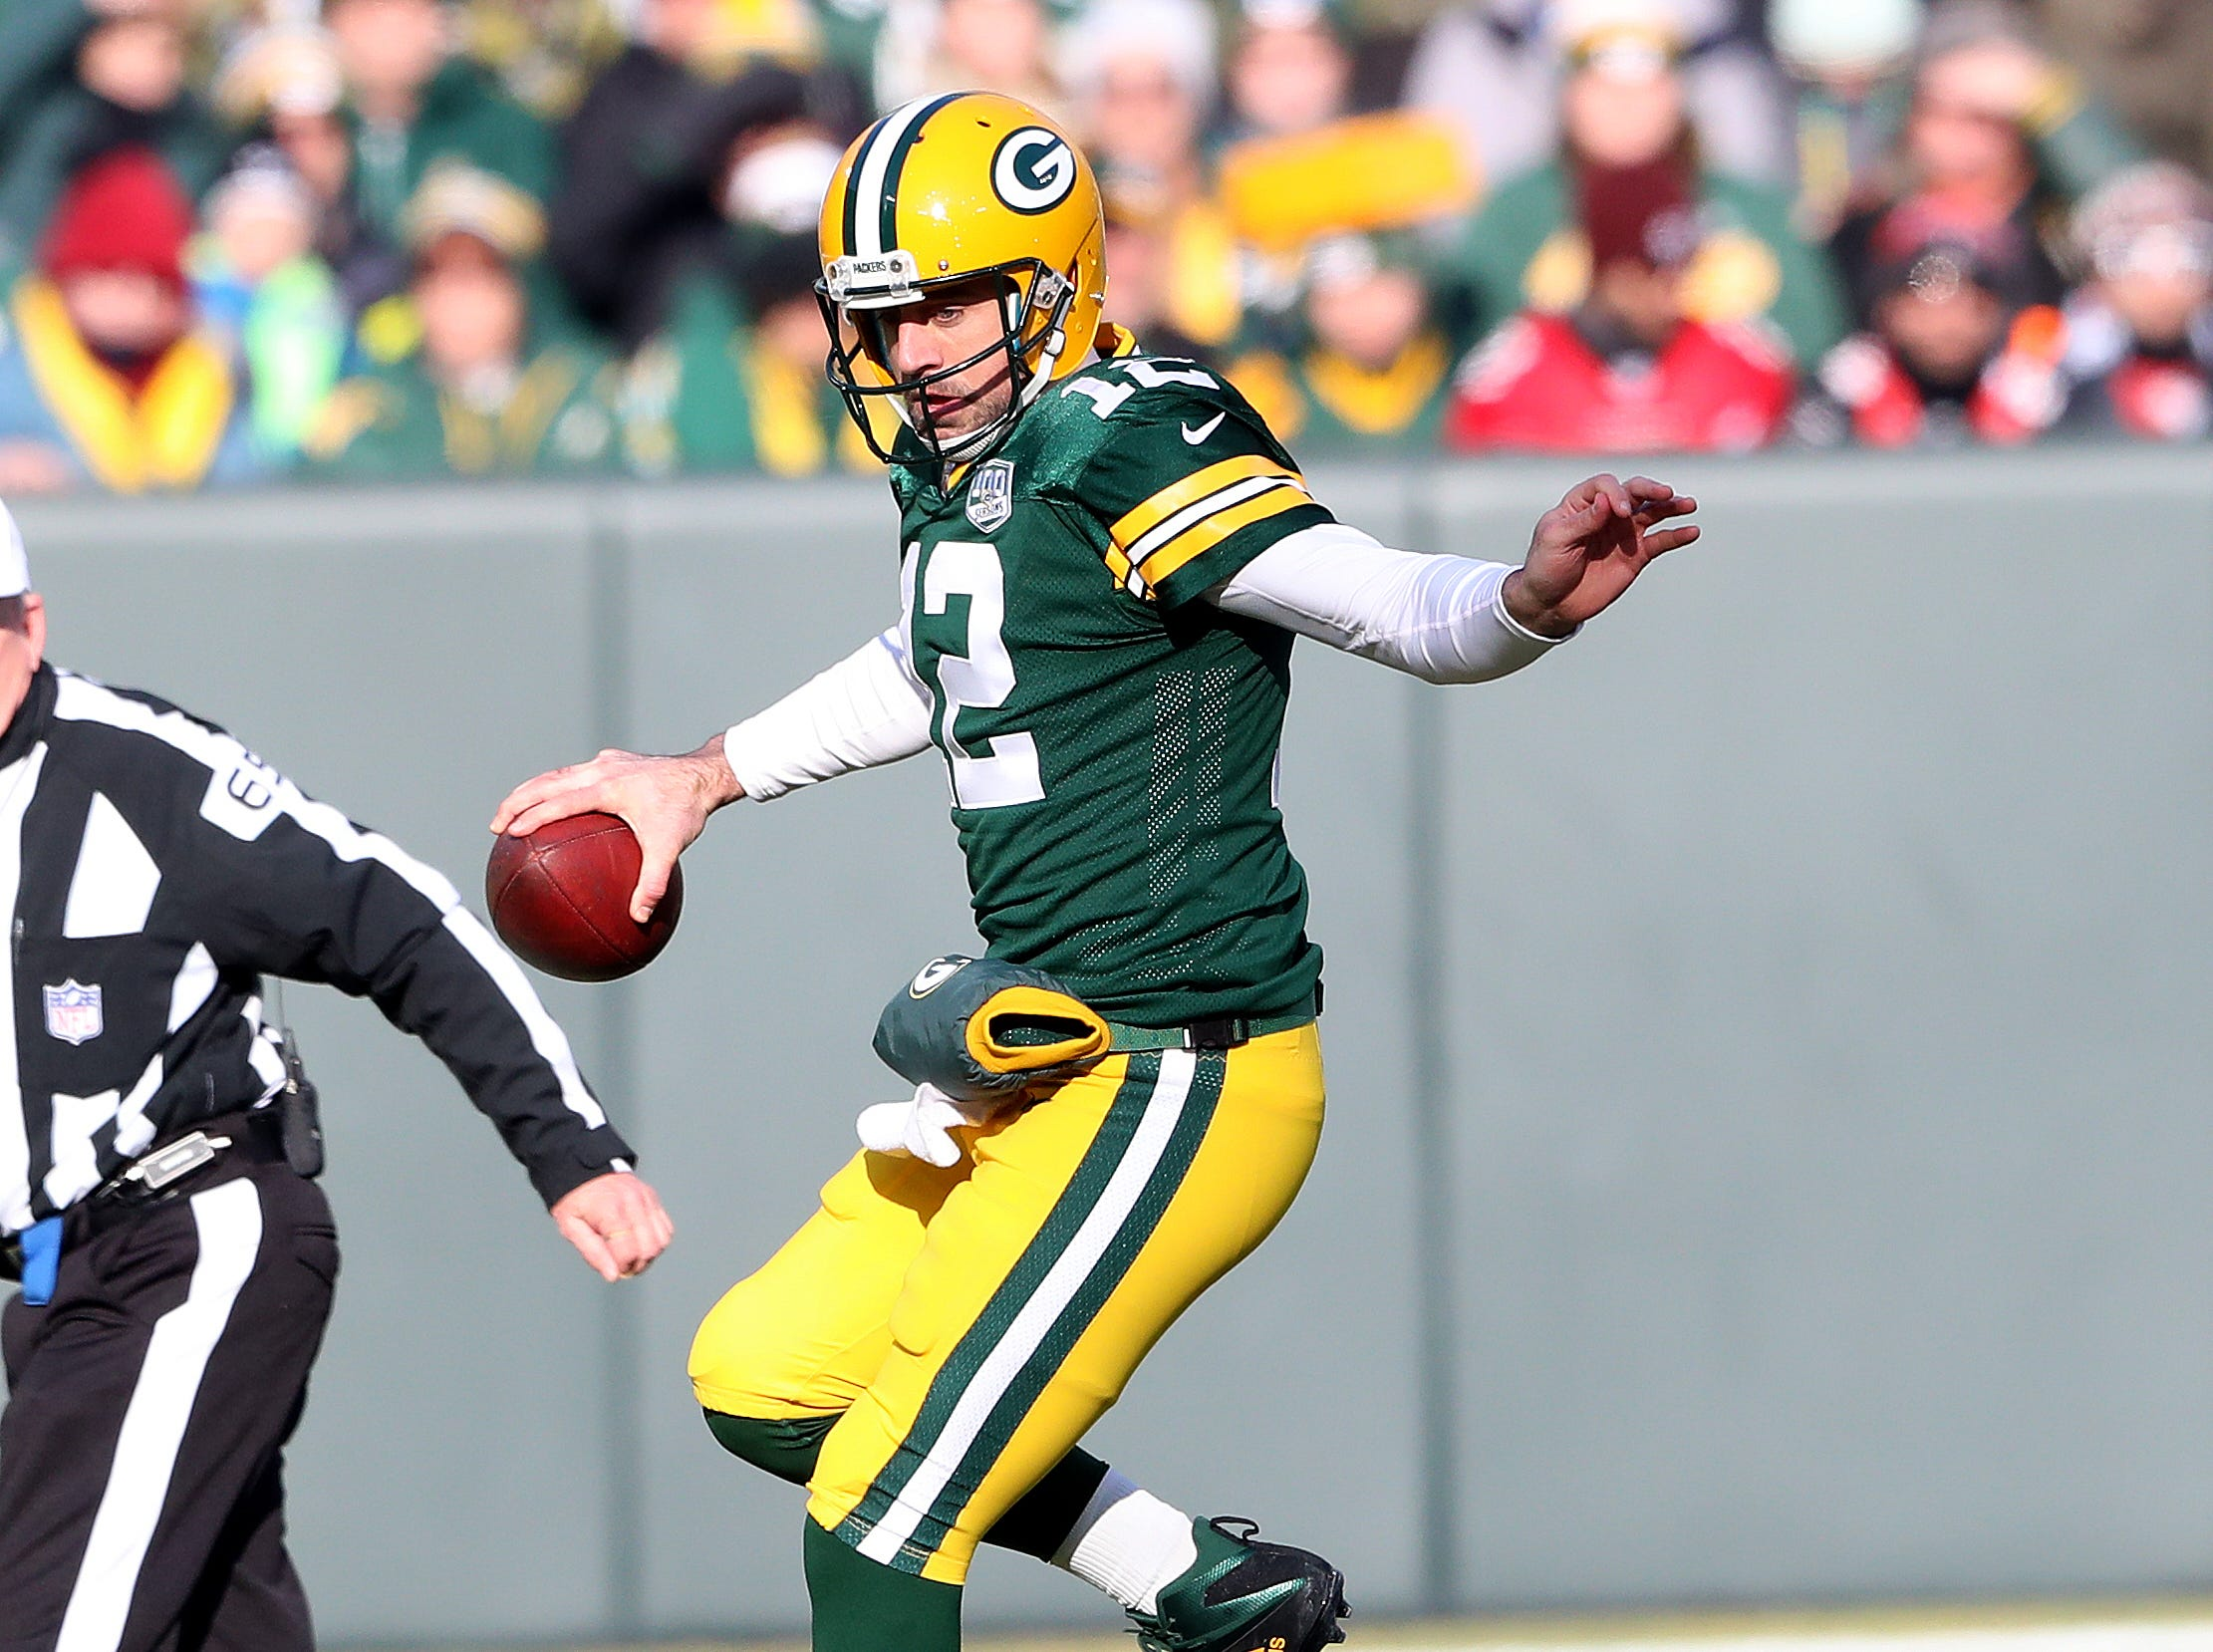 Green Bay Packers quarterback Aaron Rodgers (12) leaps past a tackle attempt against the Atlanta Falcons Sunday, December 9, 2018 at Lambeau Field in Green Bay, Wis. Jim Matthews/USA TODAY NETWORK-Wis